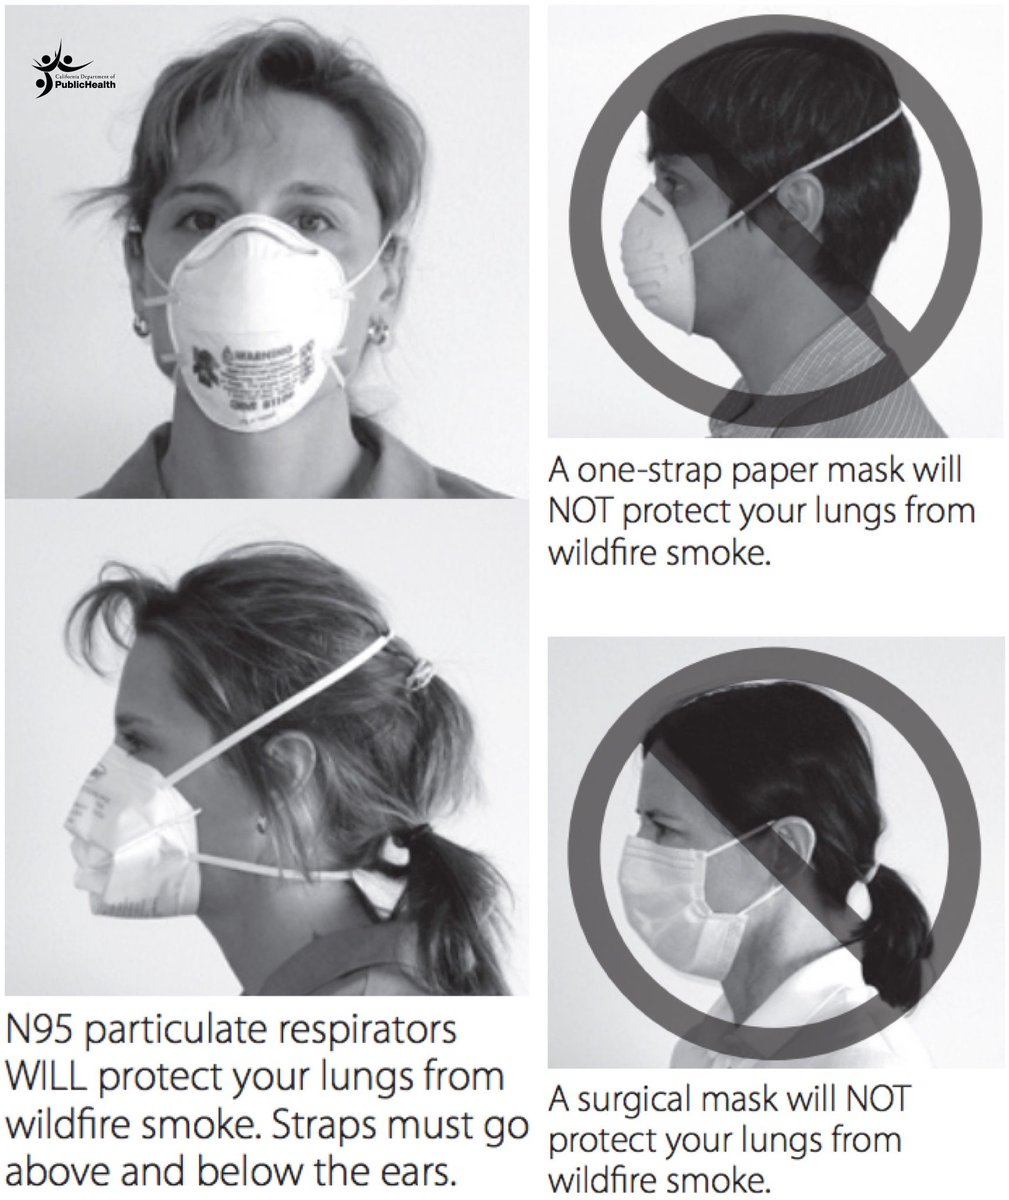 Public Health Ca On Twitter How mask Respirator dyk To A Wear